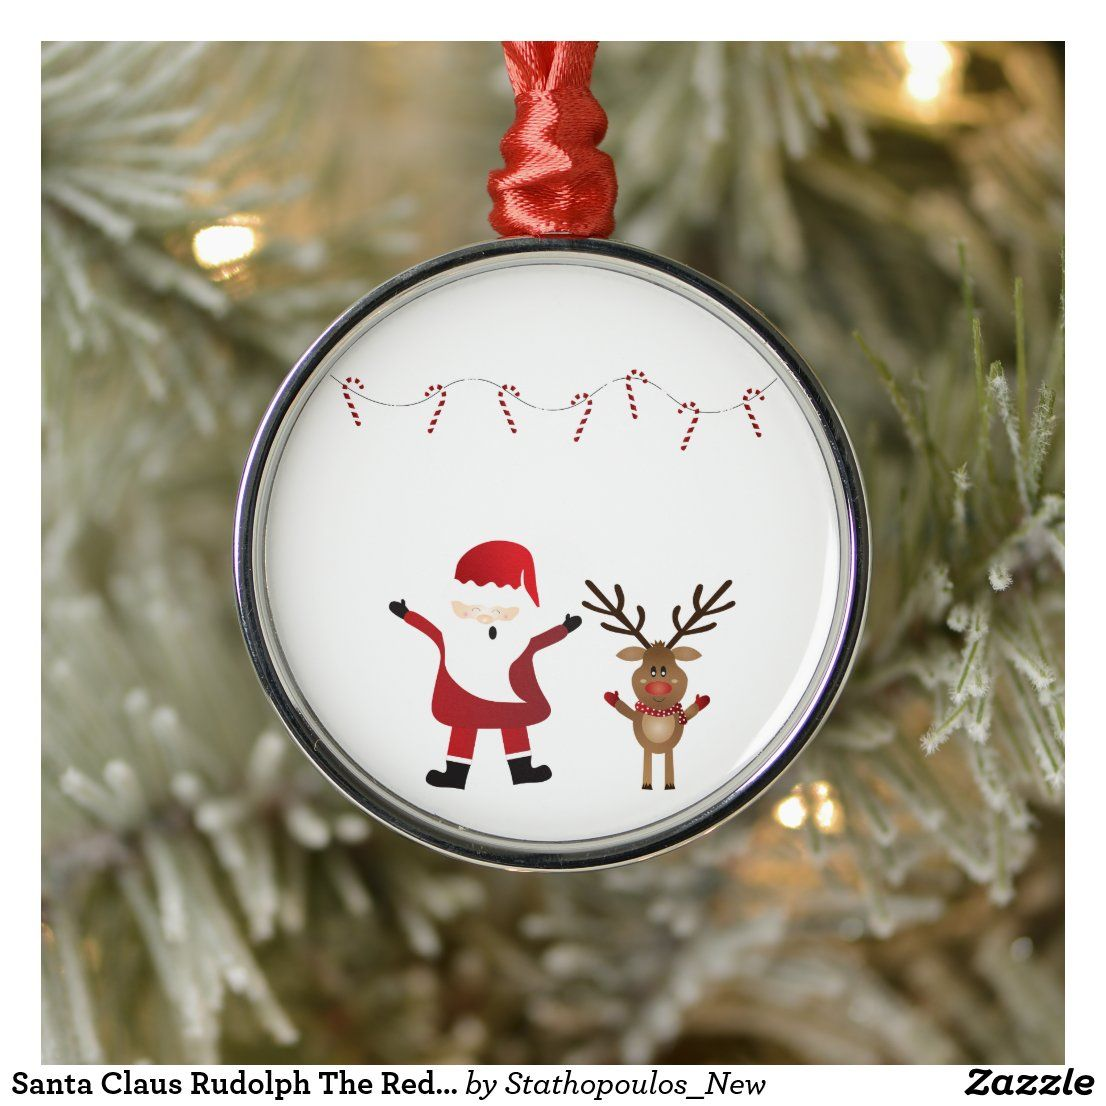 Santa Claus Rudolph The Red Nosed Reindeer Metal Ornament Zazzle Com Rudolph The Red Red Nosed Reindeer Custom Holiday Card